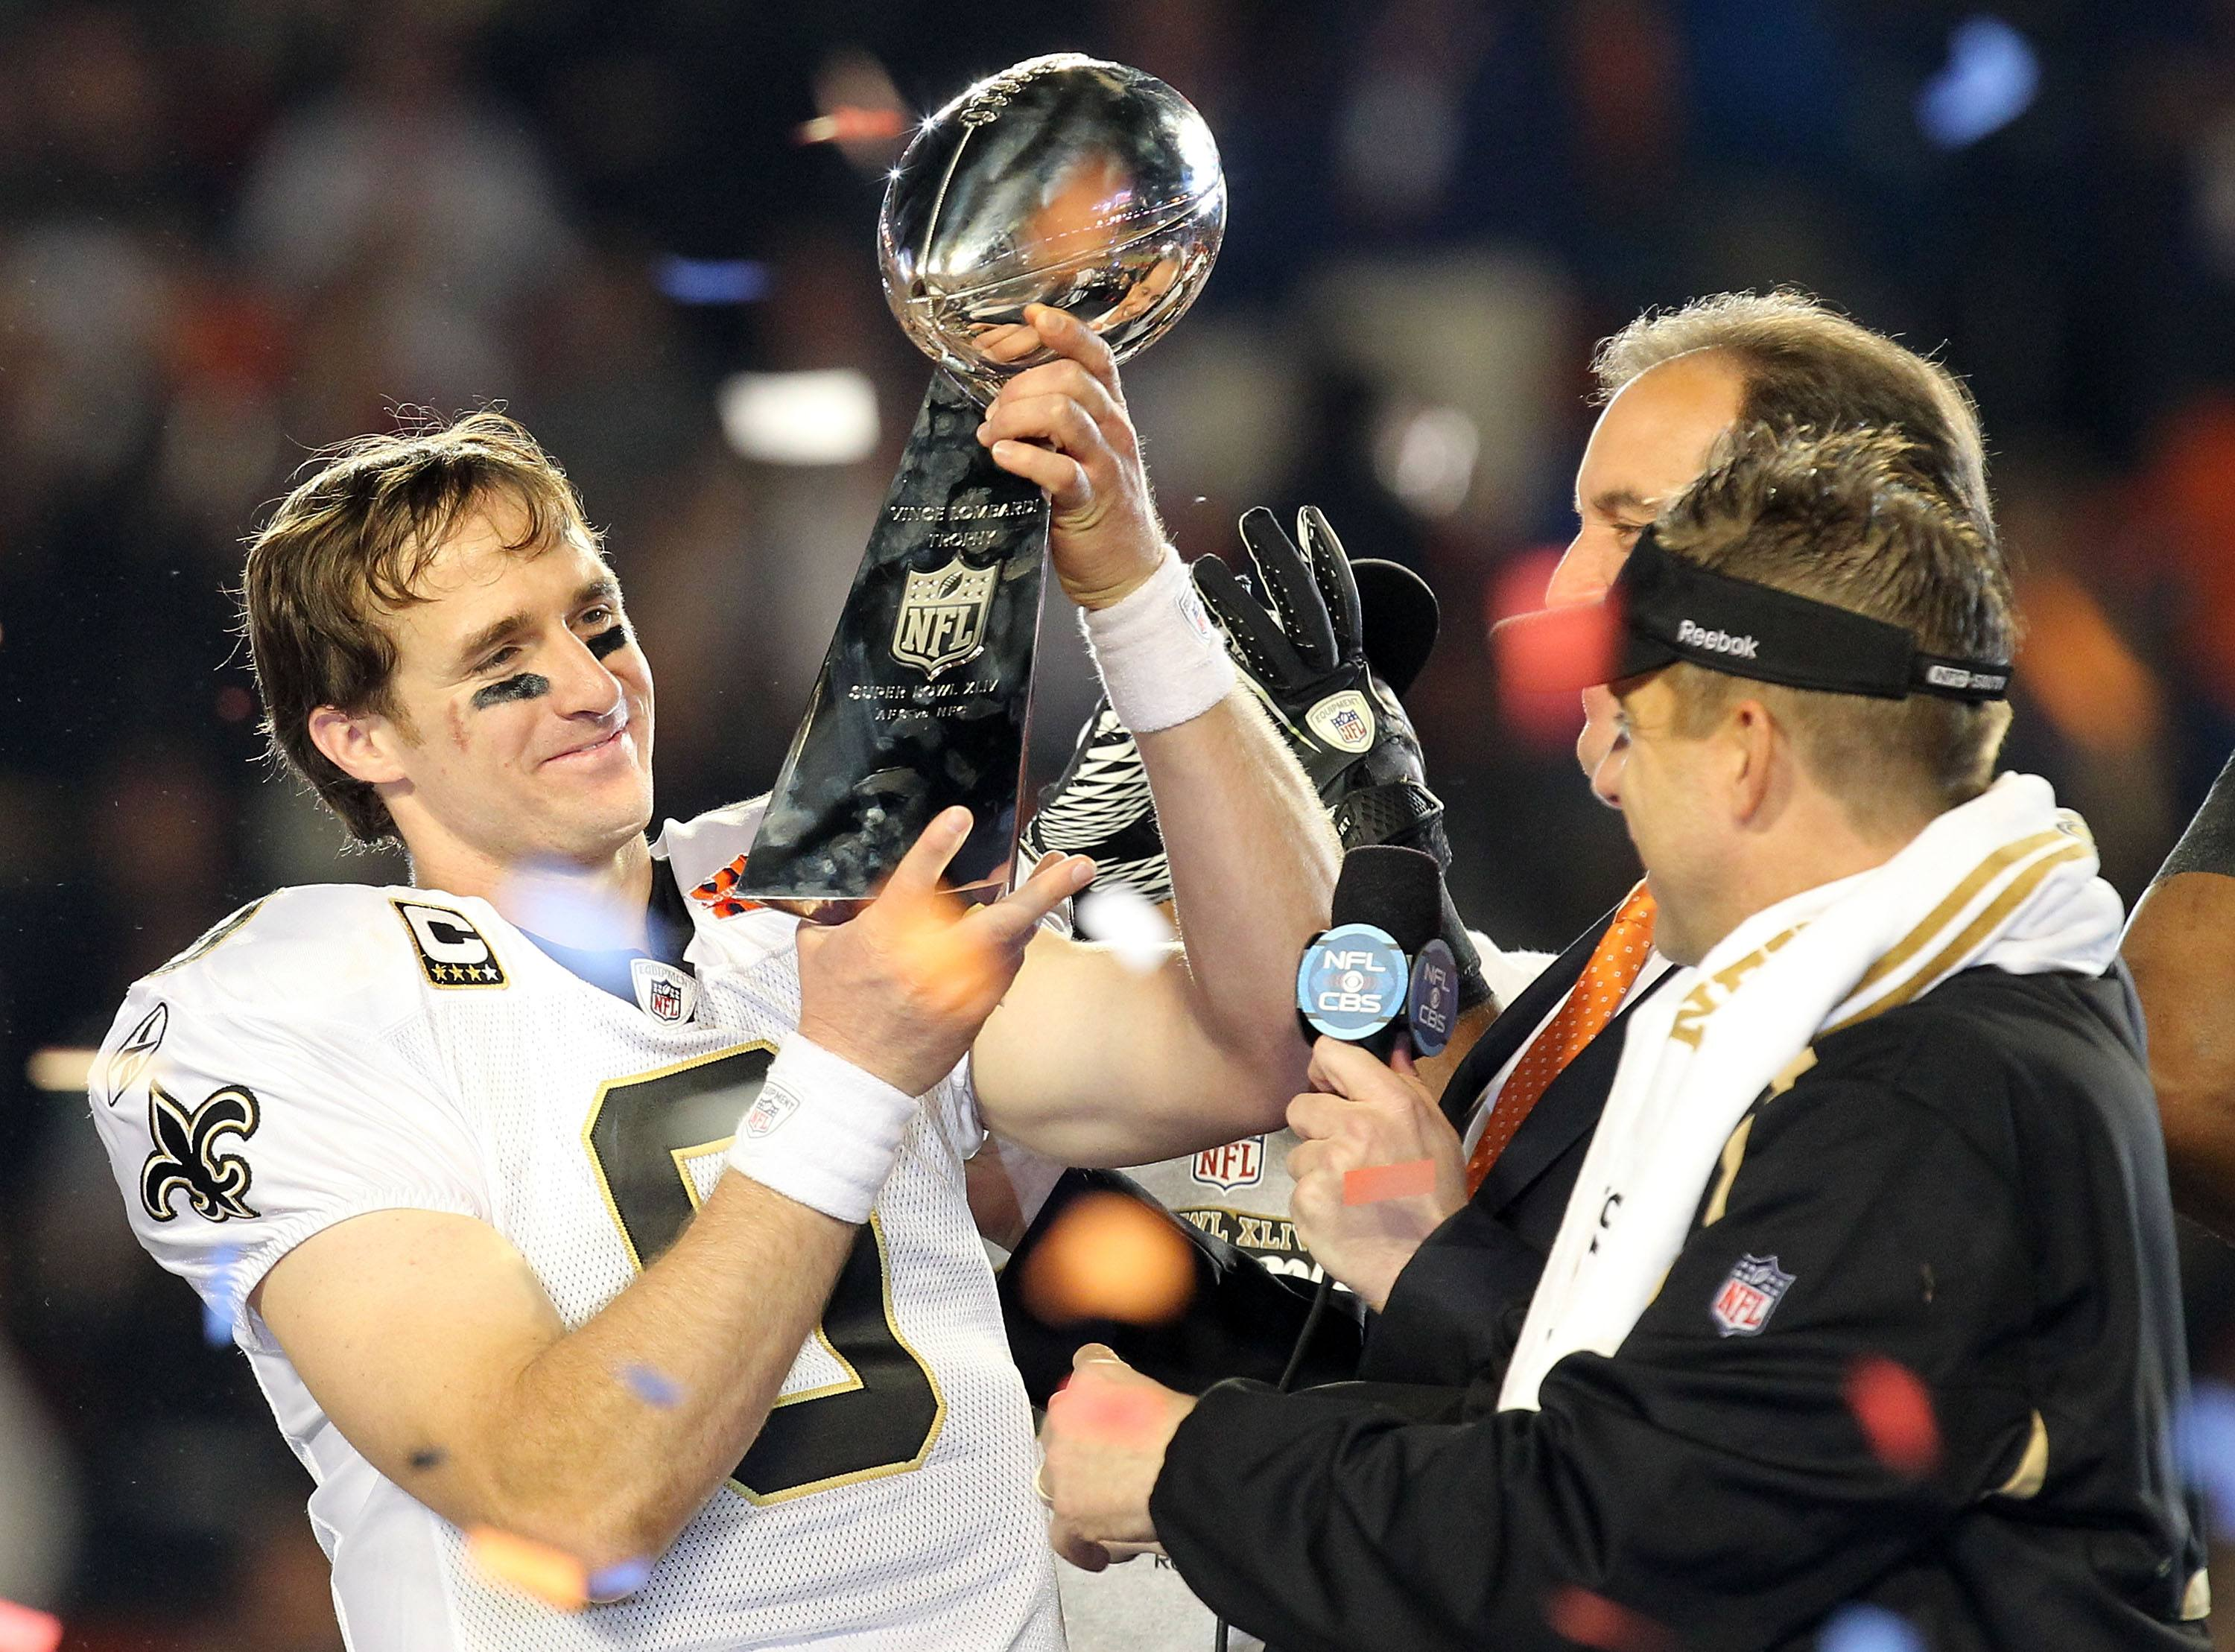 Drew Brees holds the Super Bowl trophy